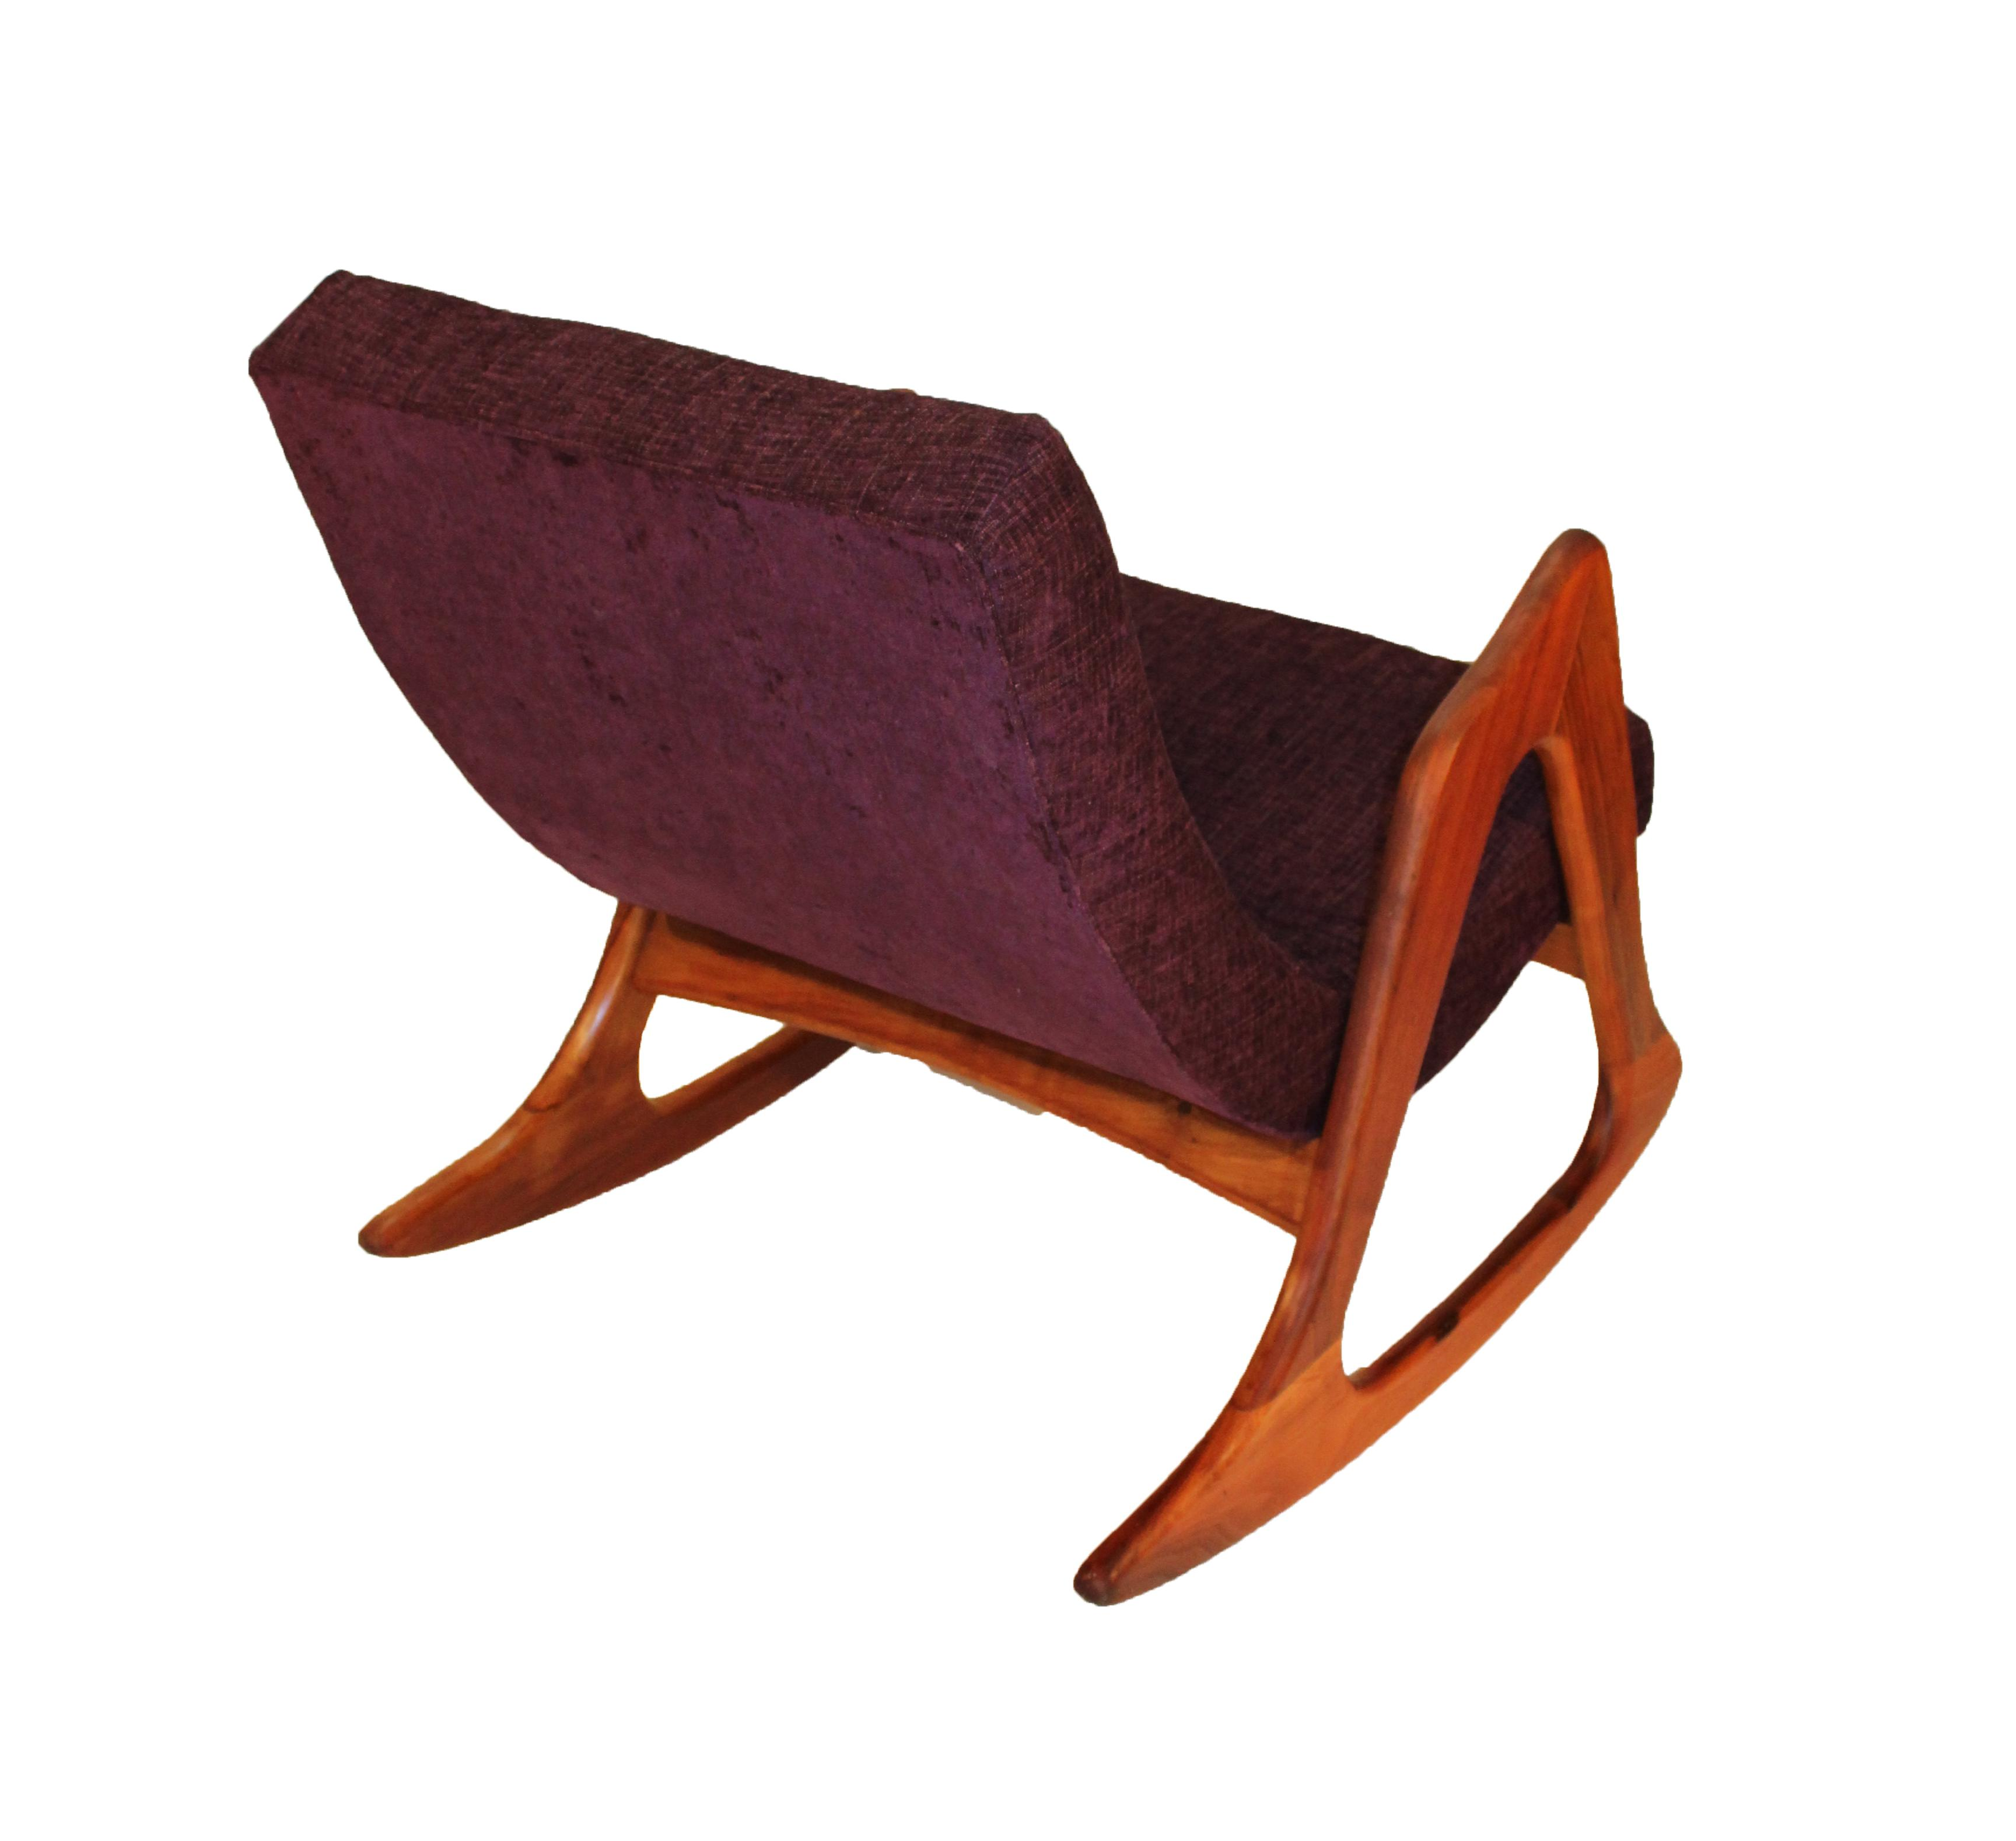 Adrian Pearsall Rocker For Craft Associates   Image 3 Of 5